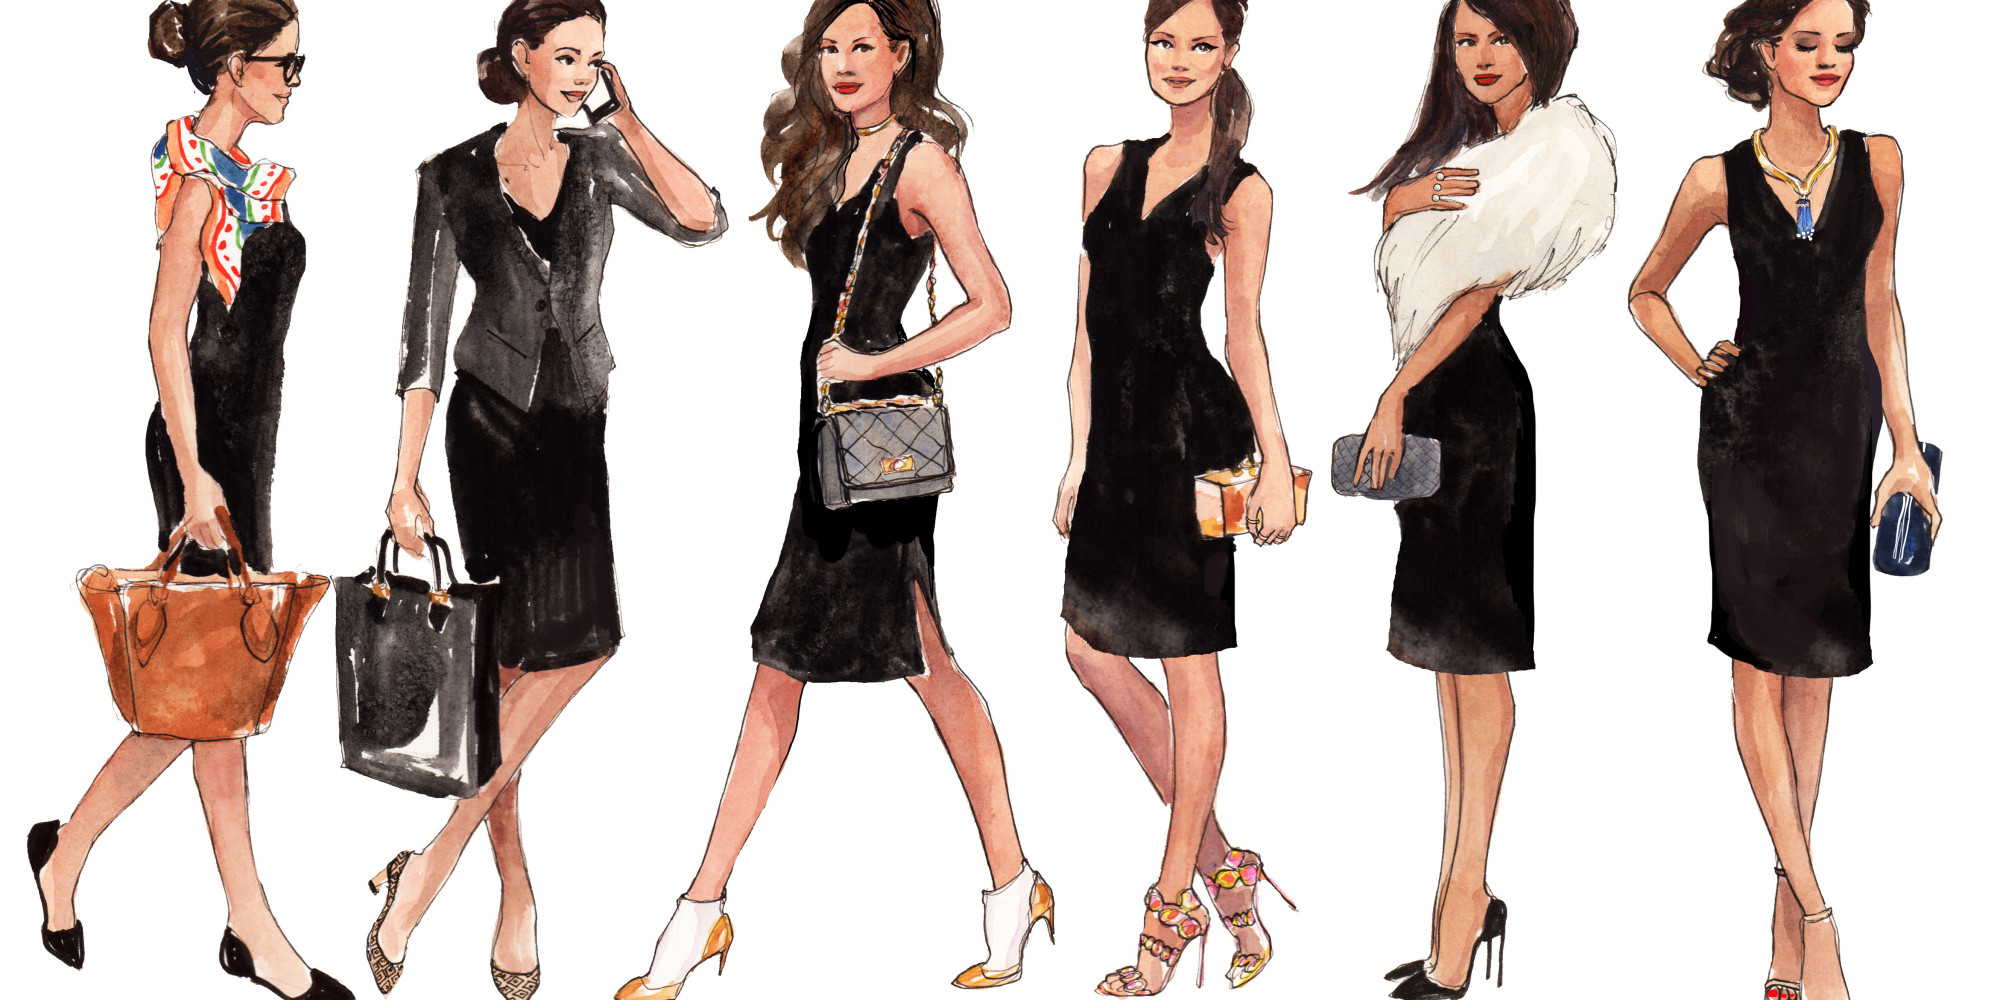 How Long Does It Take To Design A Designer Dress